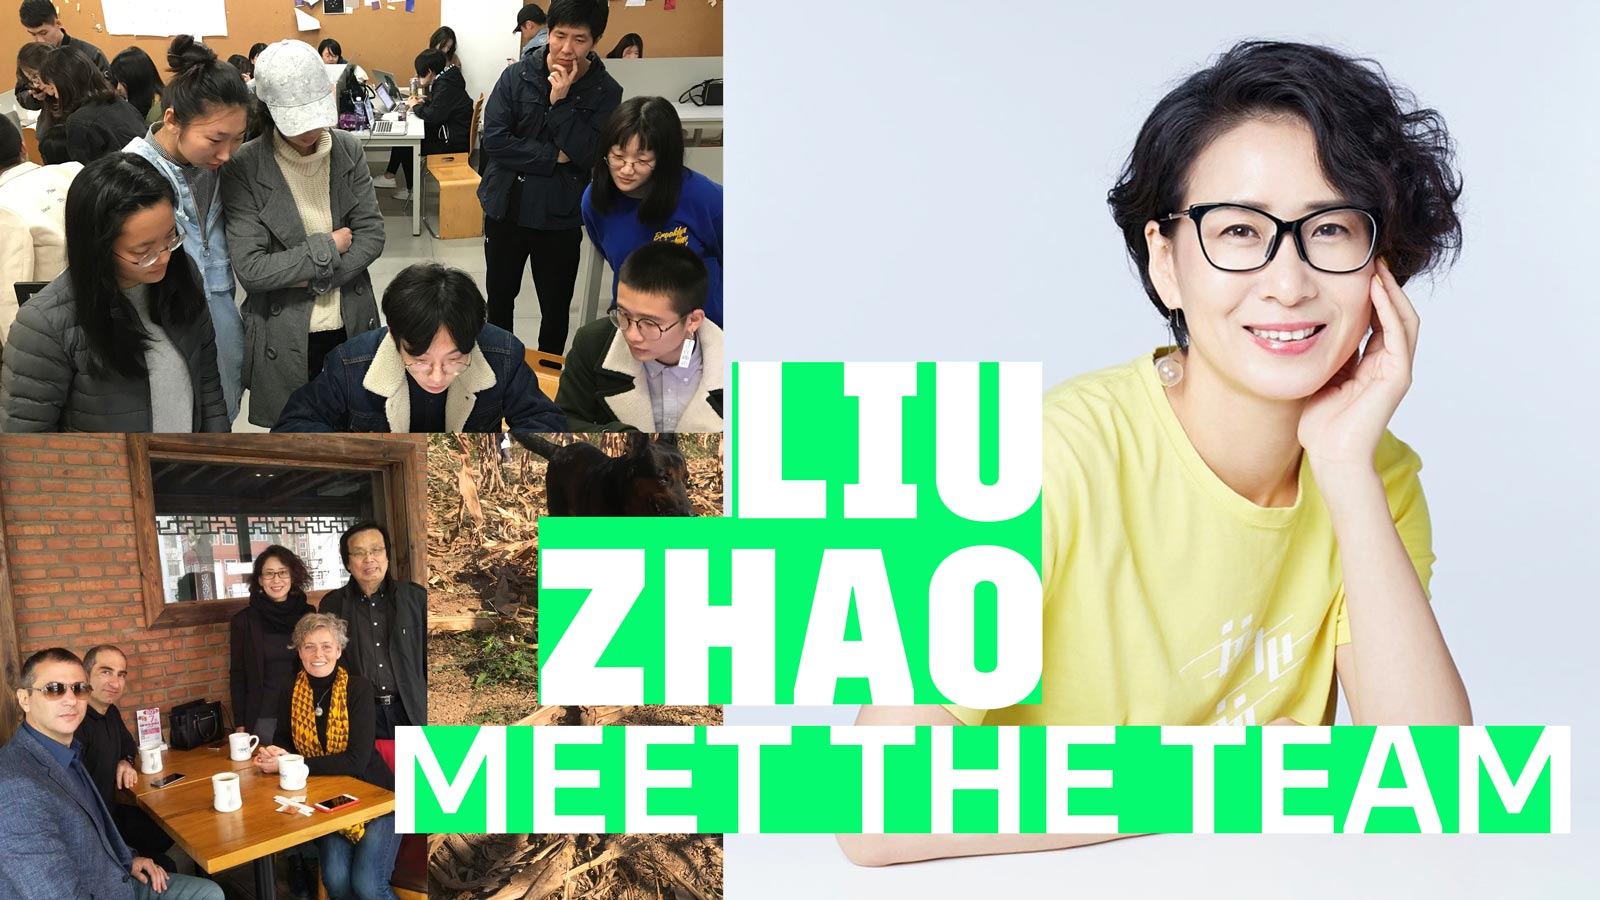 Meet the team: Liu Zhao